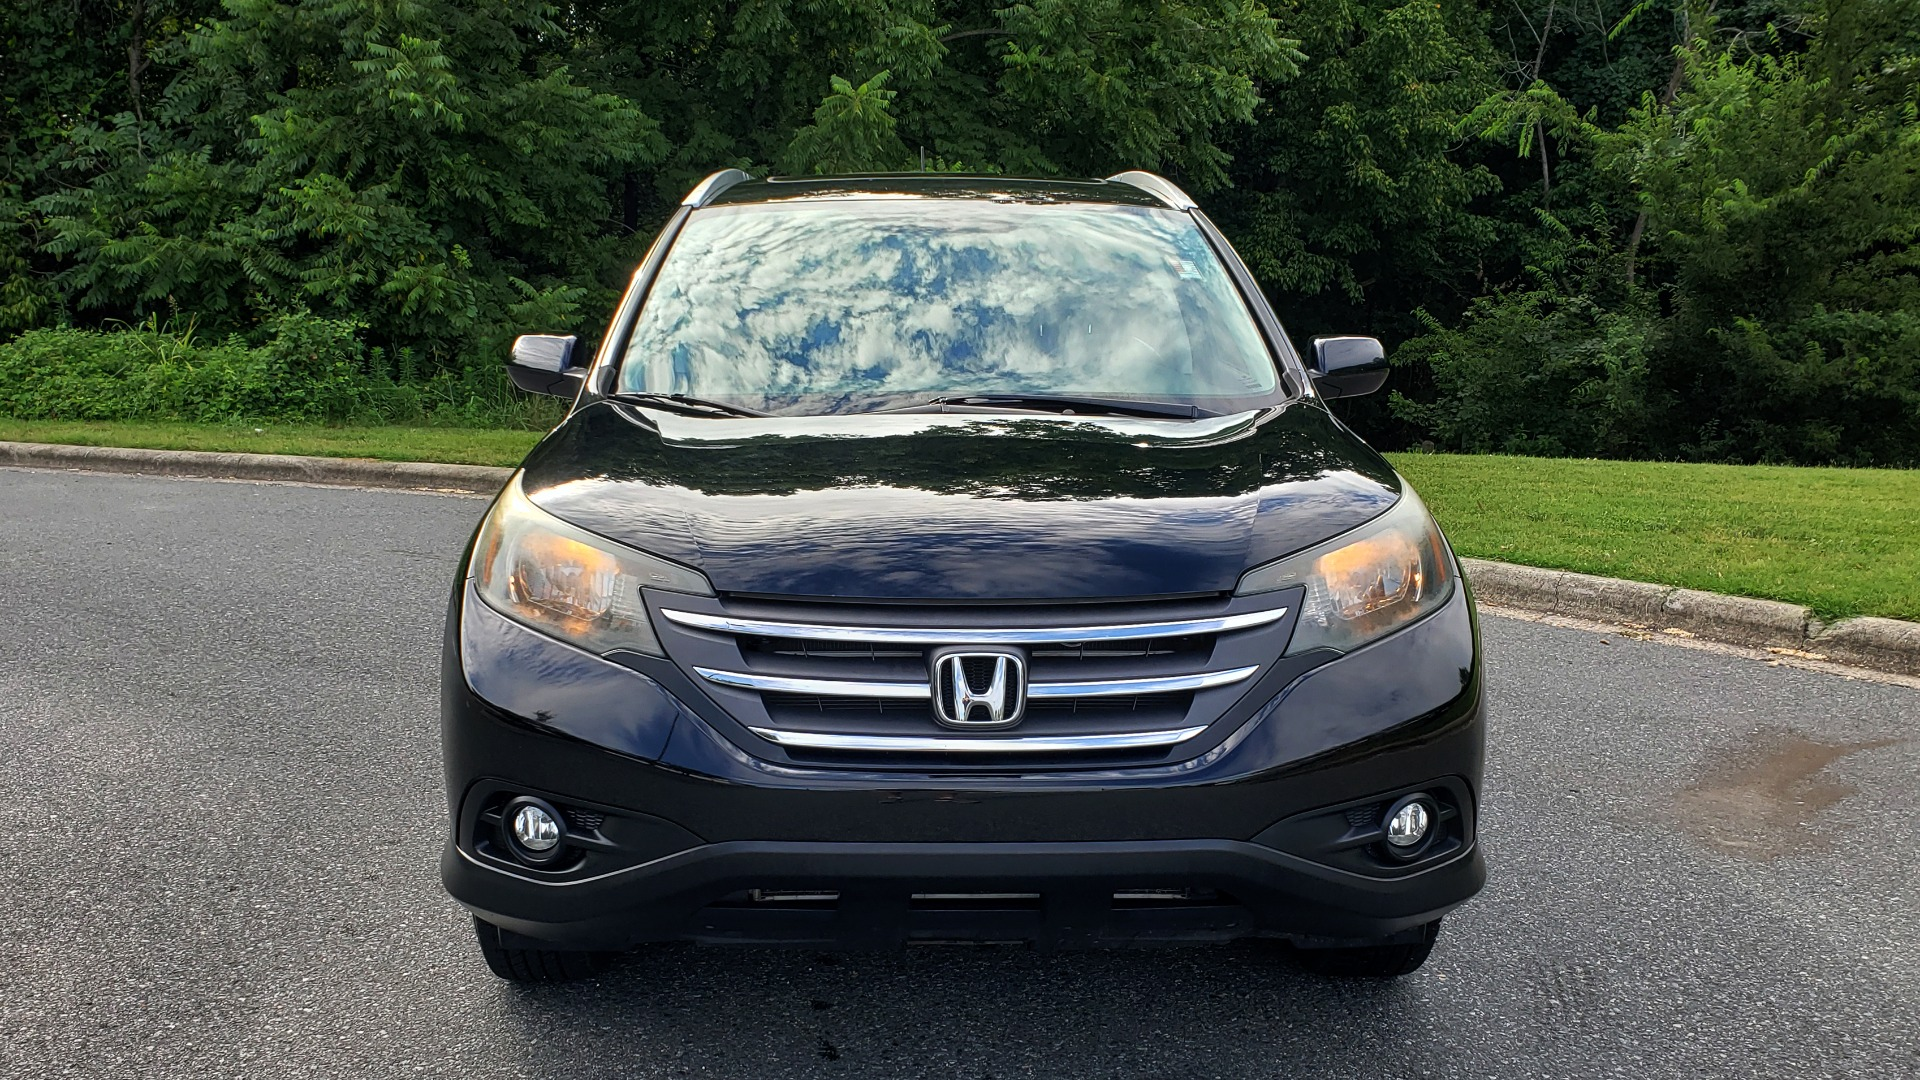 Used 2012 Honda CR-V EX-L / AWD / 5DR / SUNROOF / HEATED SEATS / REARVIEW for sale Sold at Formula Imports in Charlotte NC 28227 19